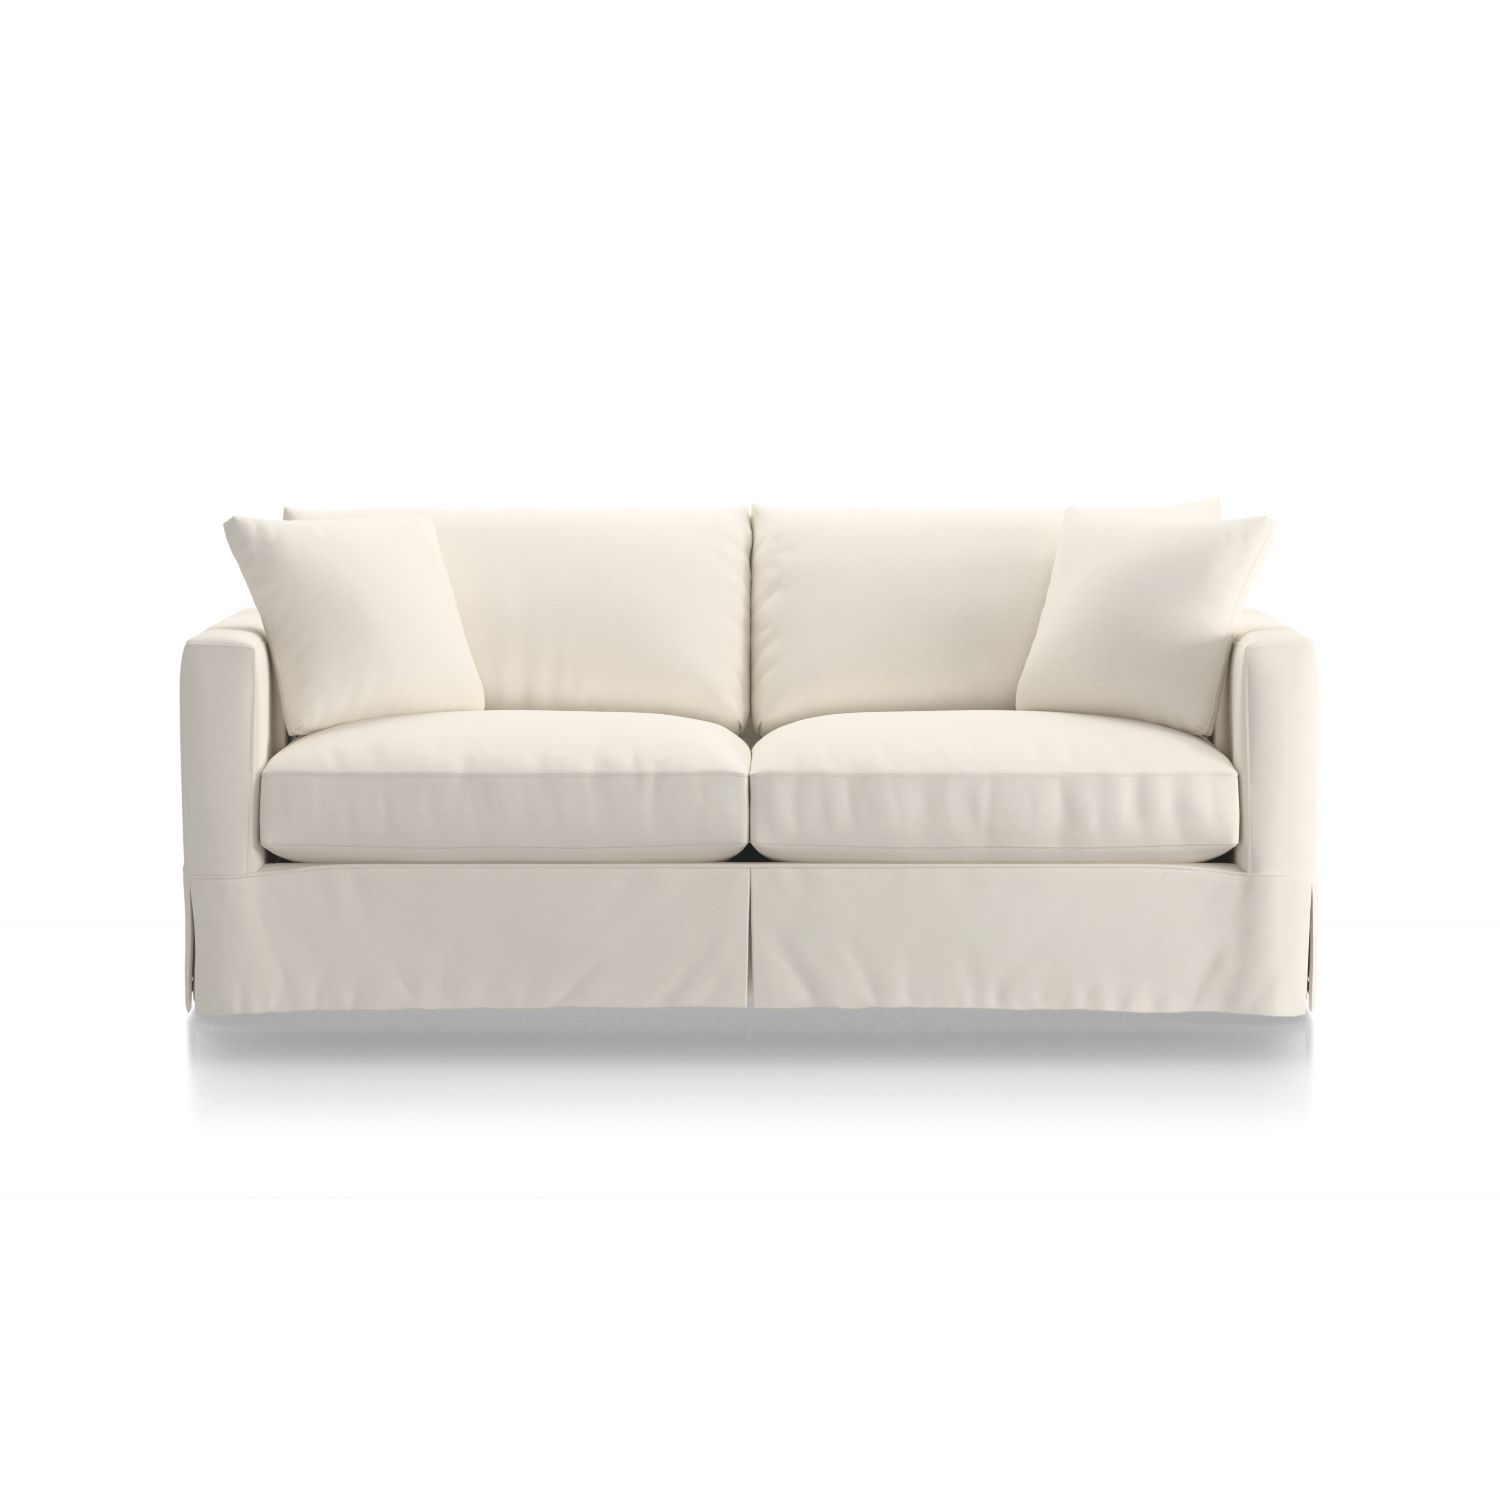 Willow White Sleeper Couch Reviews Crate And Barrel Sofa